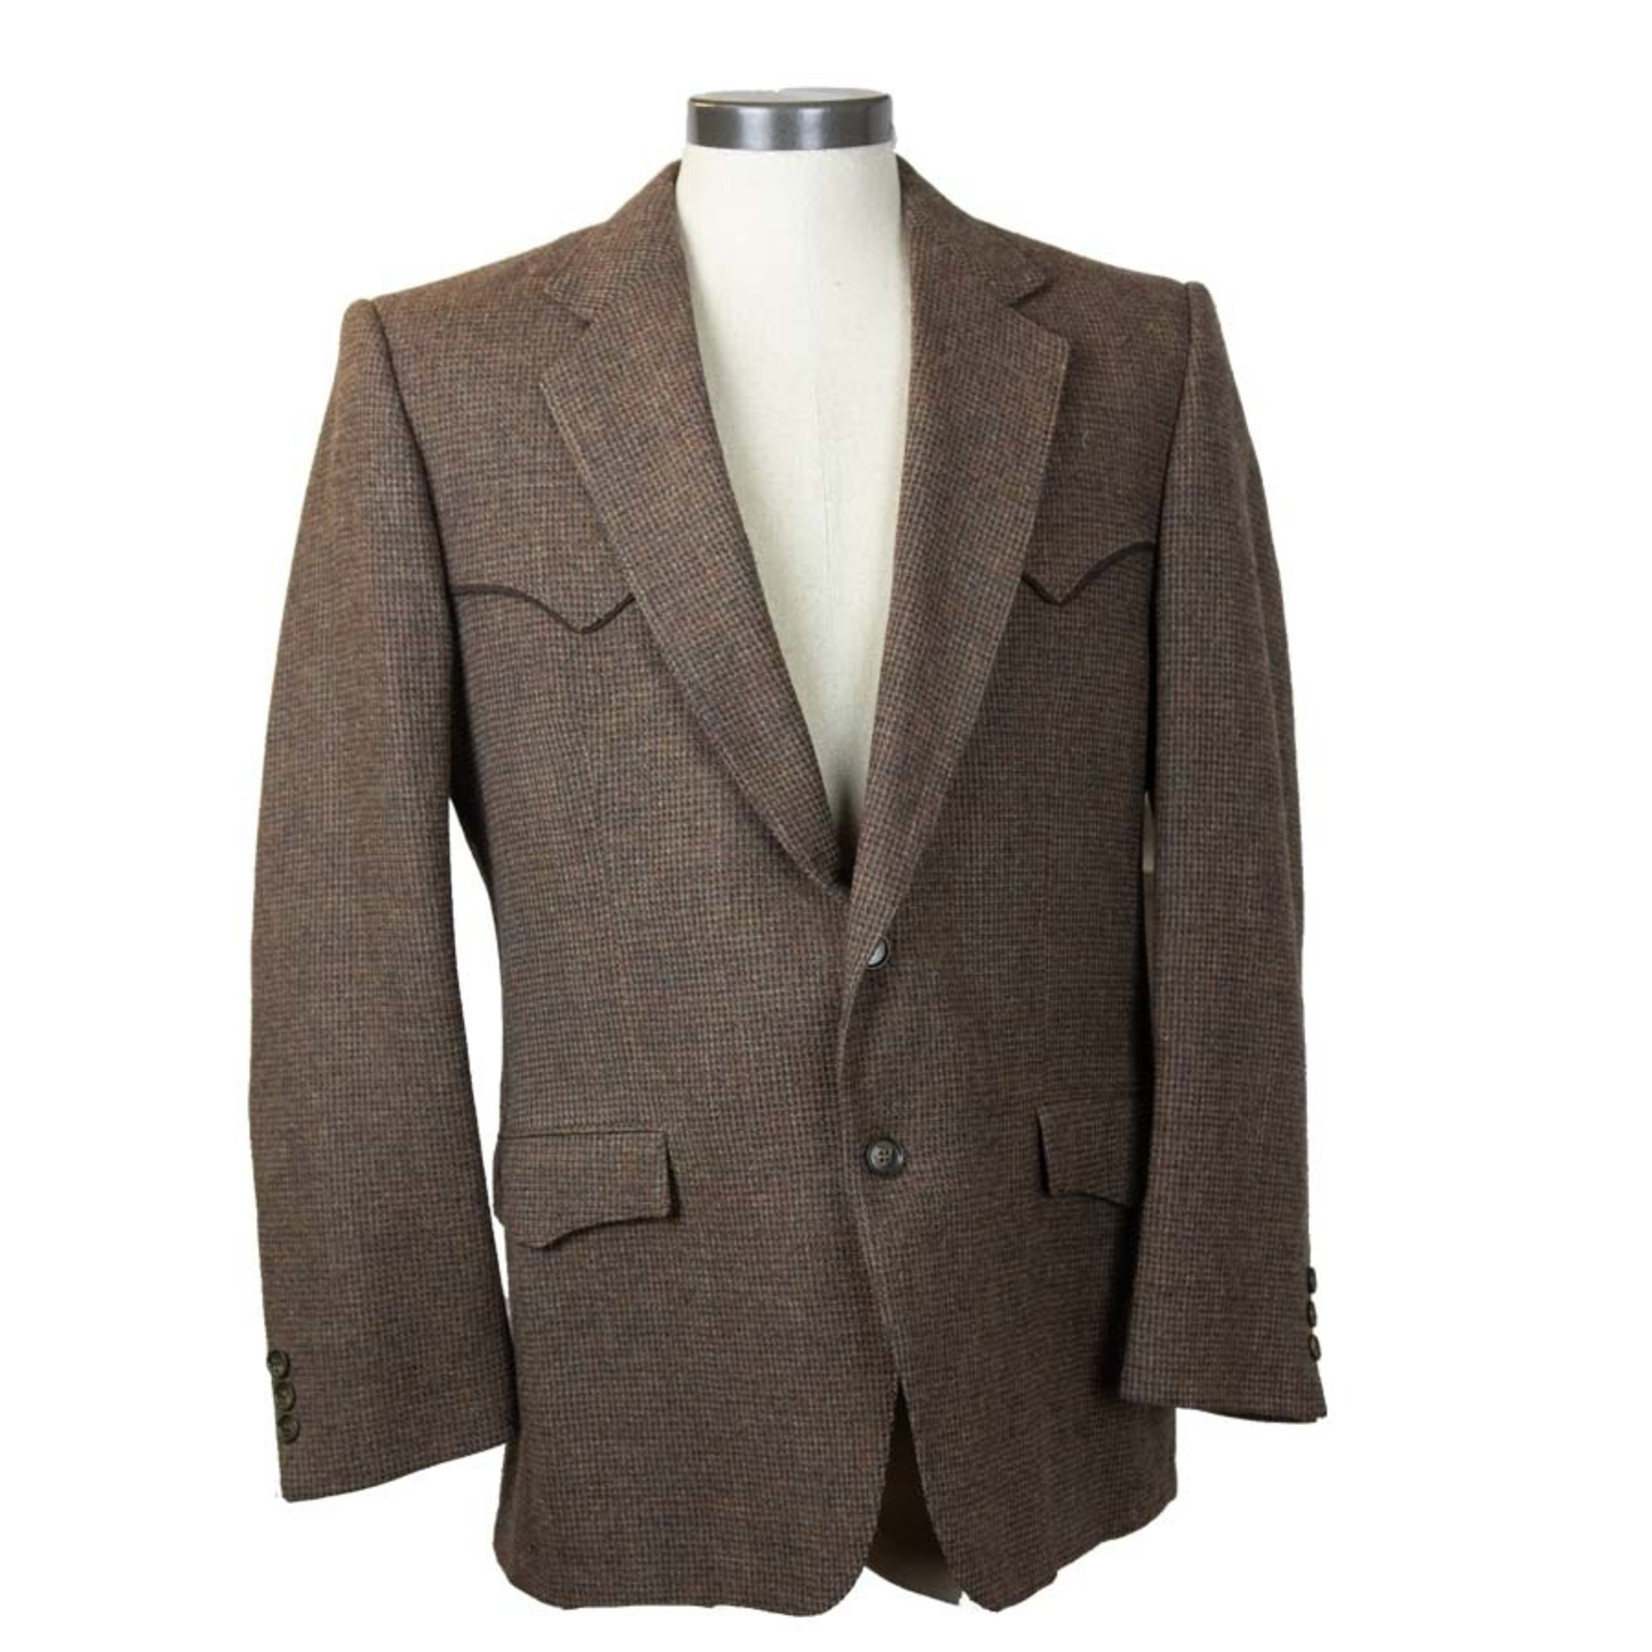 Flying L 100% Wool Suit Jacket - size 40 - #2